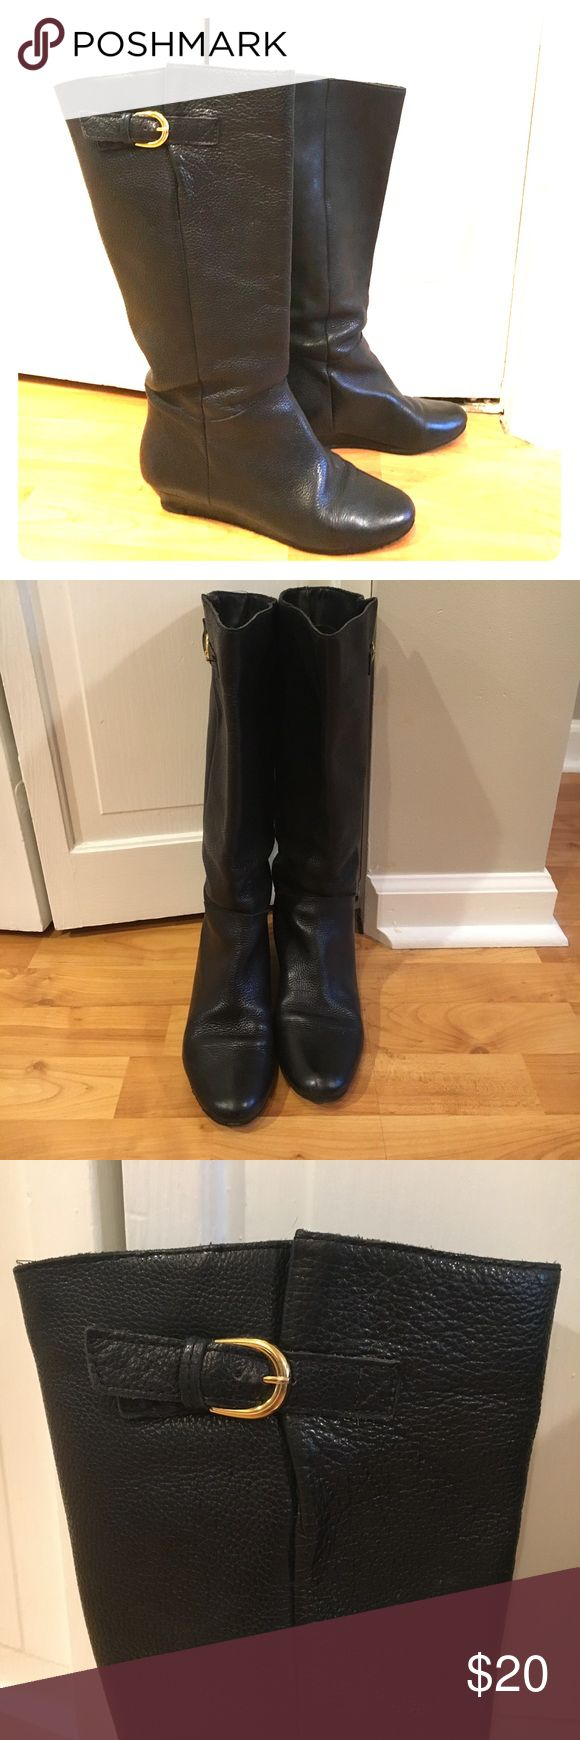 Steve Madden black leather boots Steve Madden Intyce black leather boots with gold buckle on side, lightly worn at toe and heel Steve Madden Shoes Winter & Rain Boots